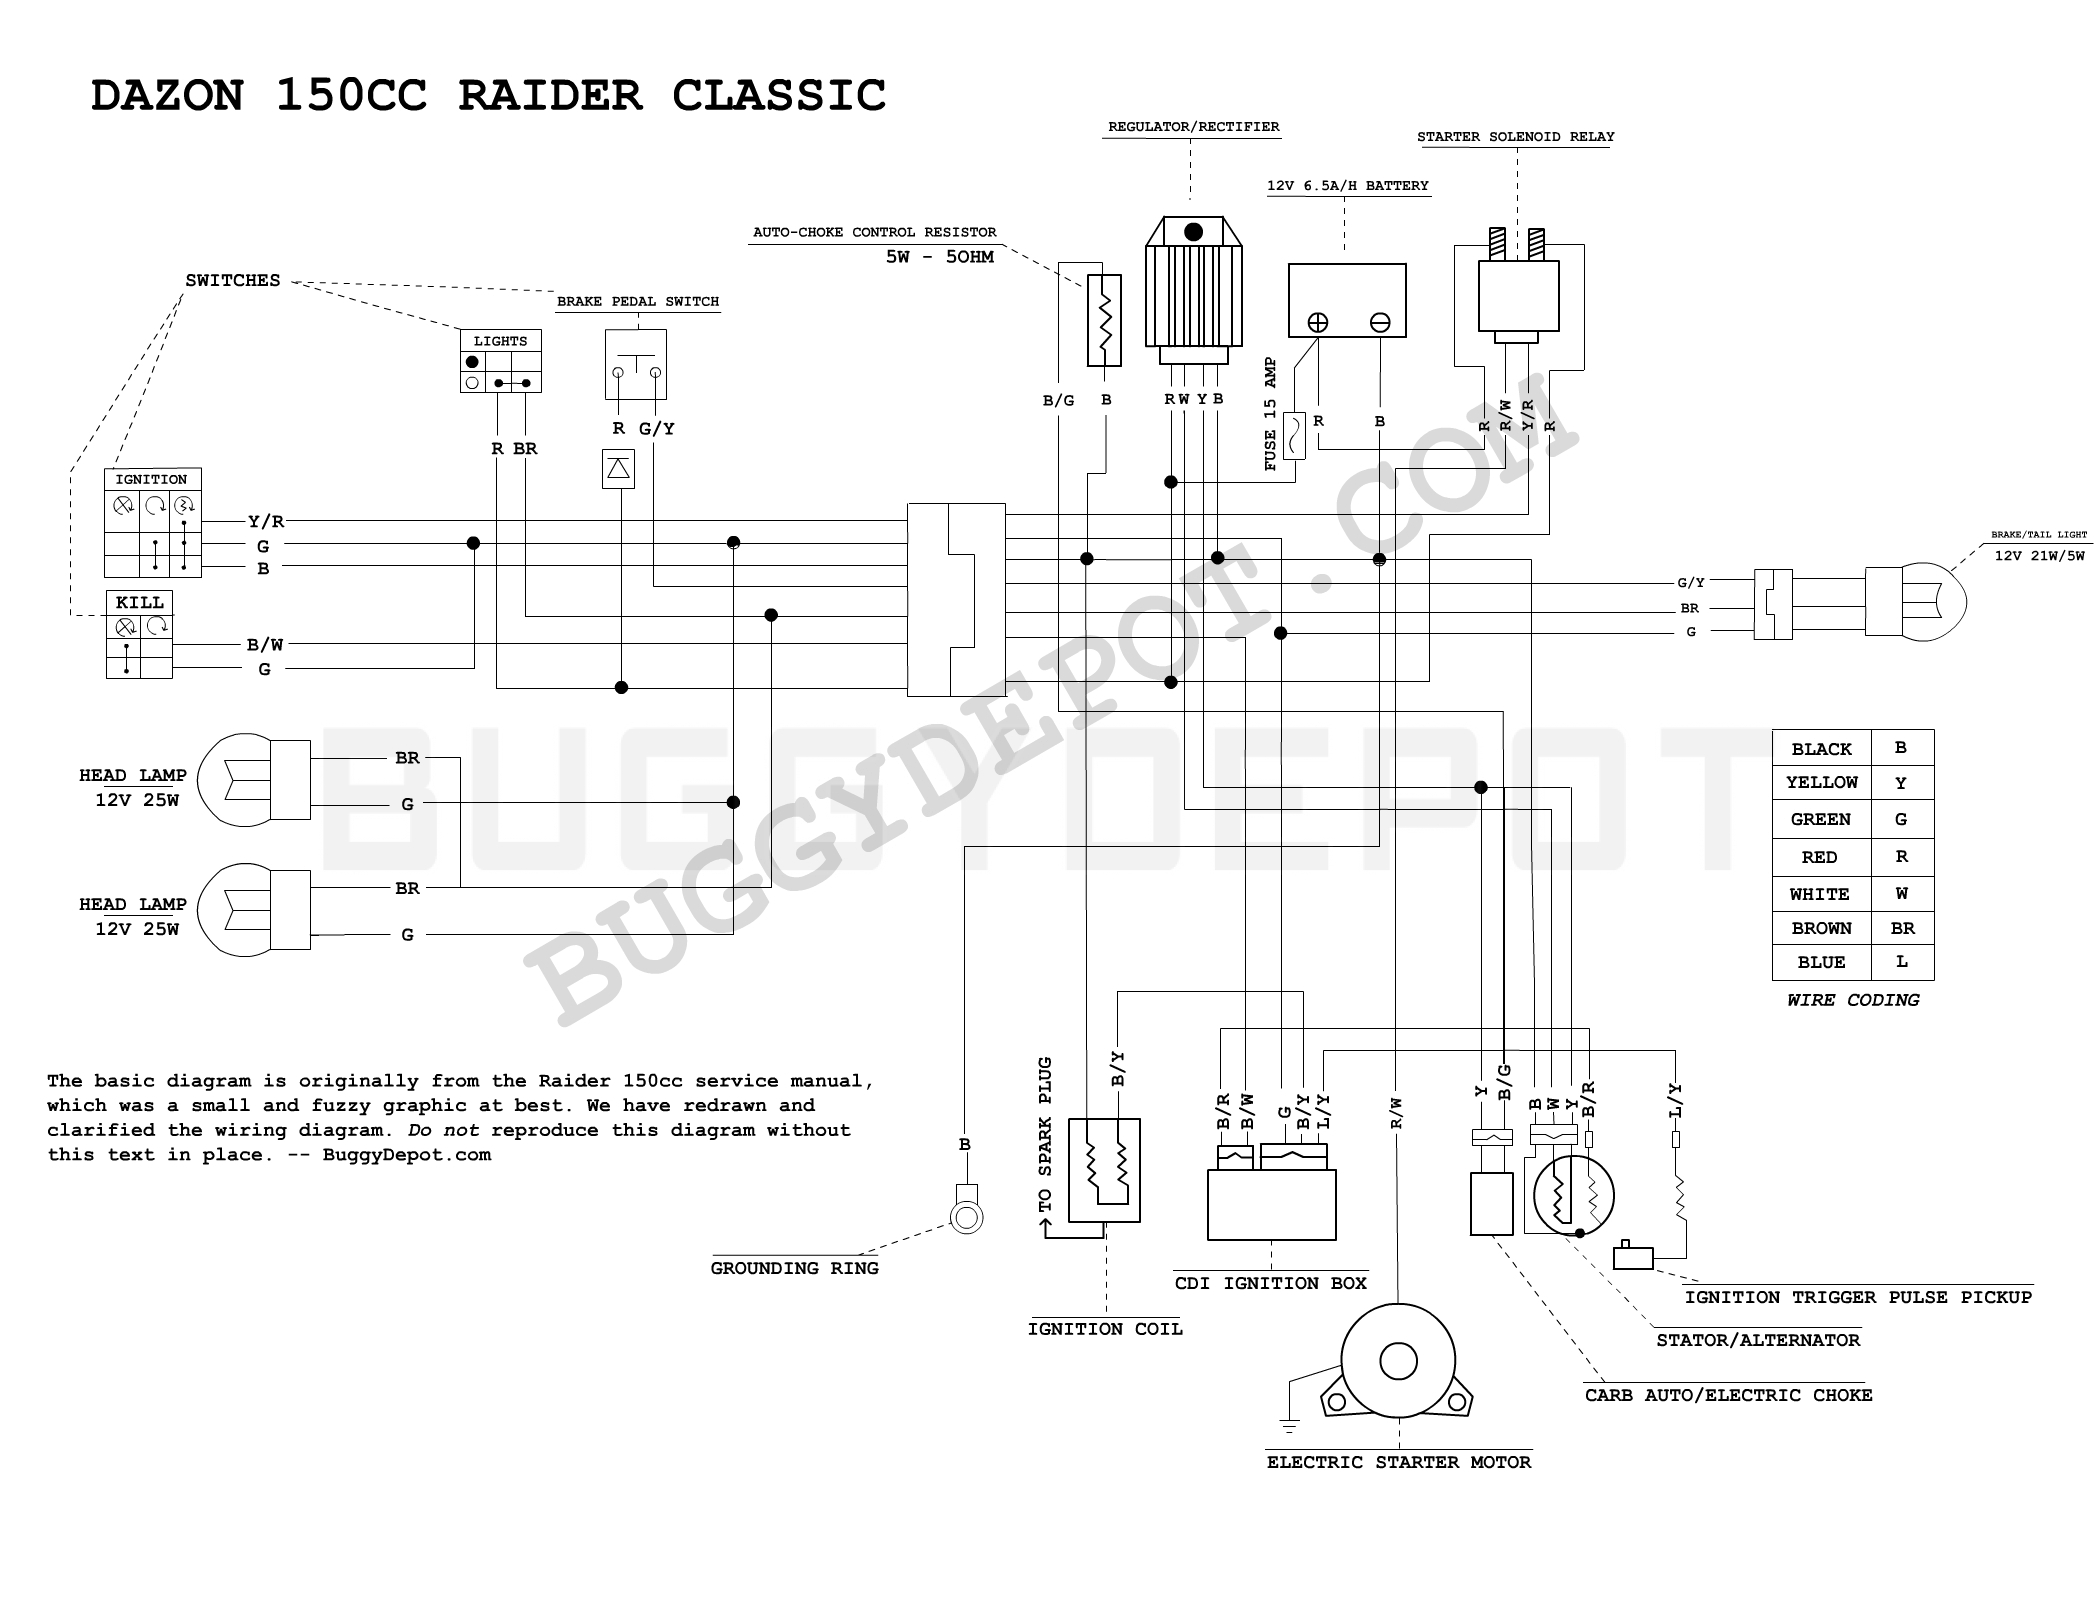 article_33_1278205207 gy6 150cc ignition troubleshooting guide no spark? buggy depot baja dune 150 wiring diagram at bakdesigns.co